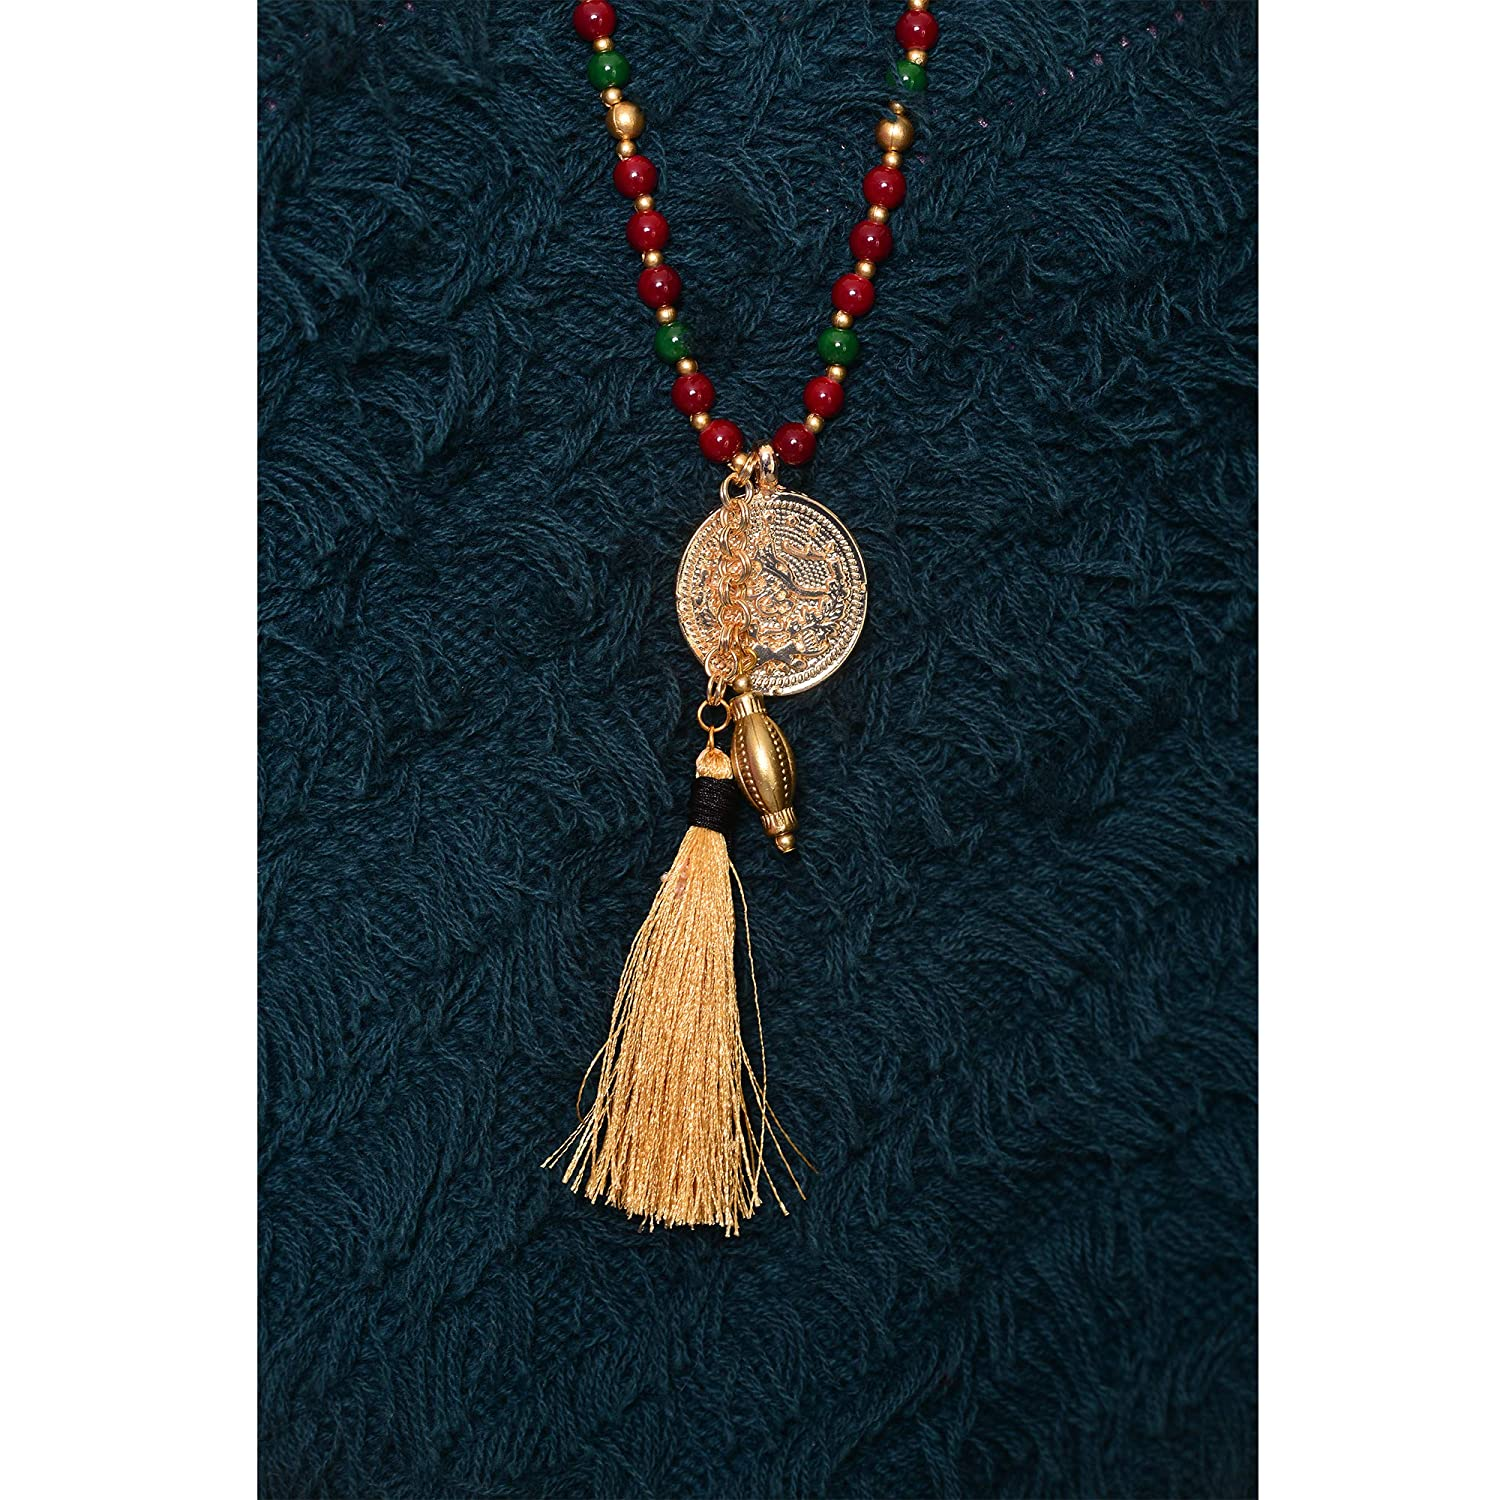 Handmade VQ Concept Ethnic Mala İndian Necklace for Women Girls Gift